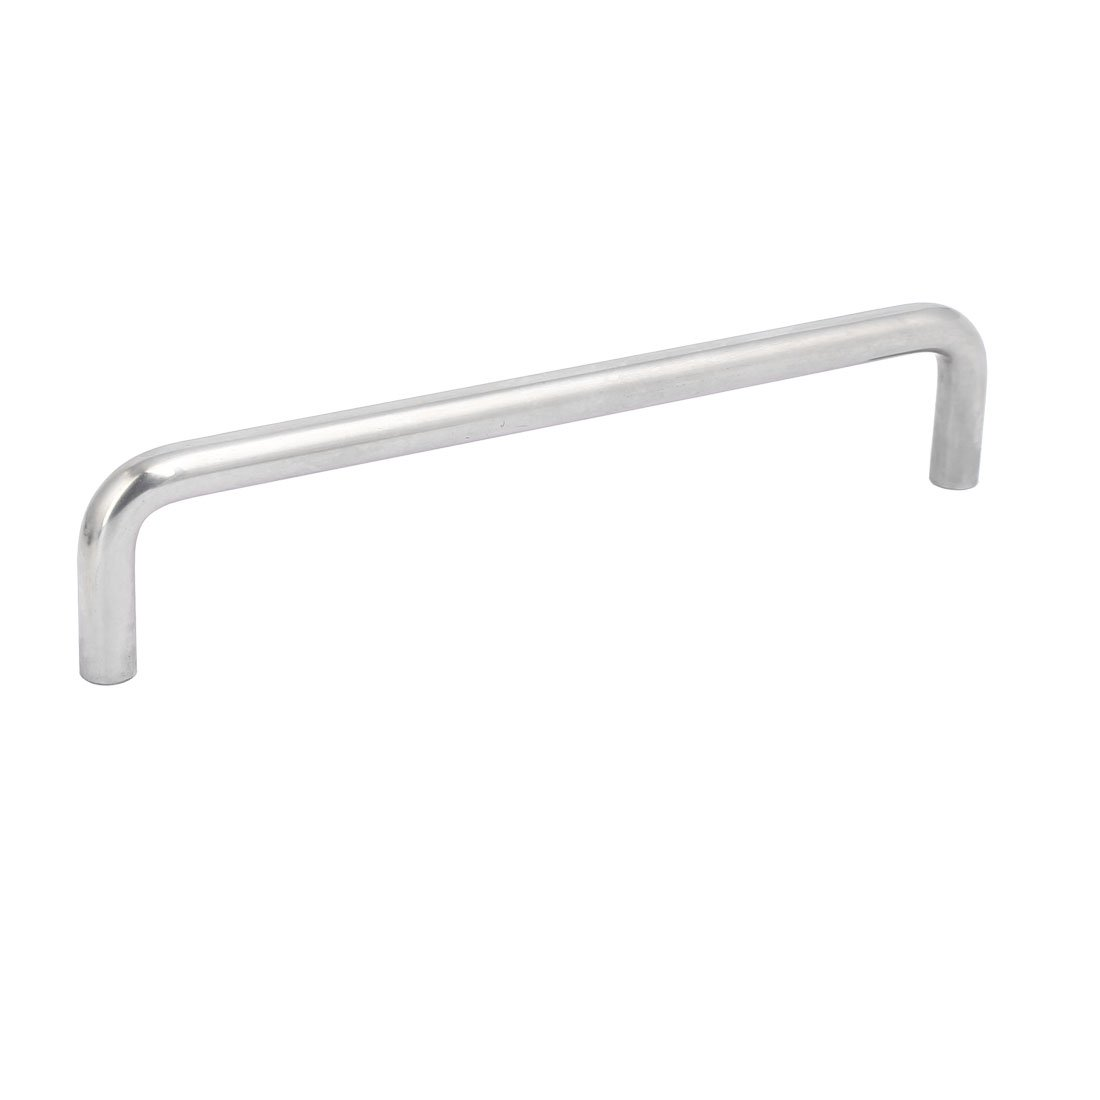 uxcell Cabinet Wardrobe Drawer 180mm Hole Spacing Stainless Steel U Bar Pull Handle